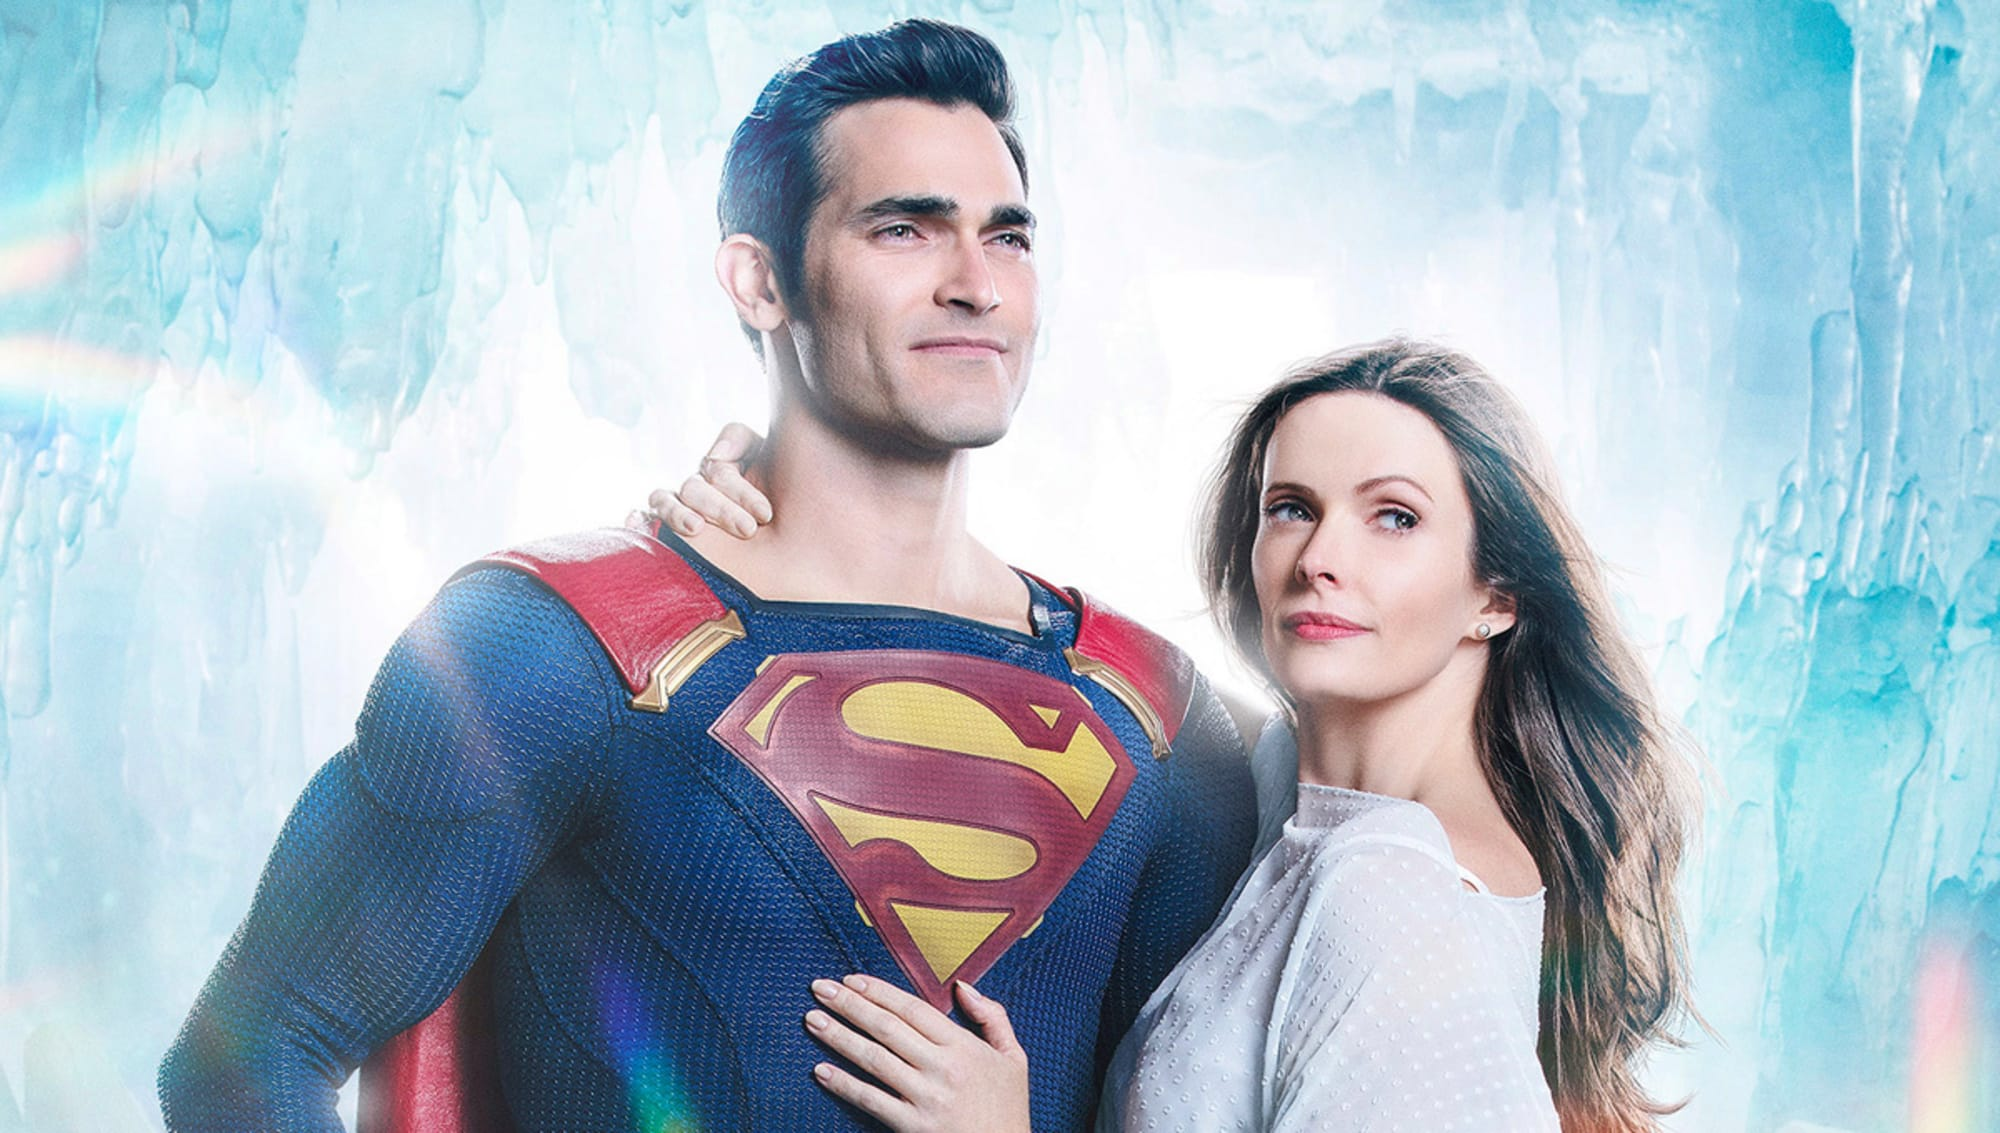 Superman & Lois gets super-sized premiere, The Flash premiere pushed back